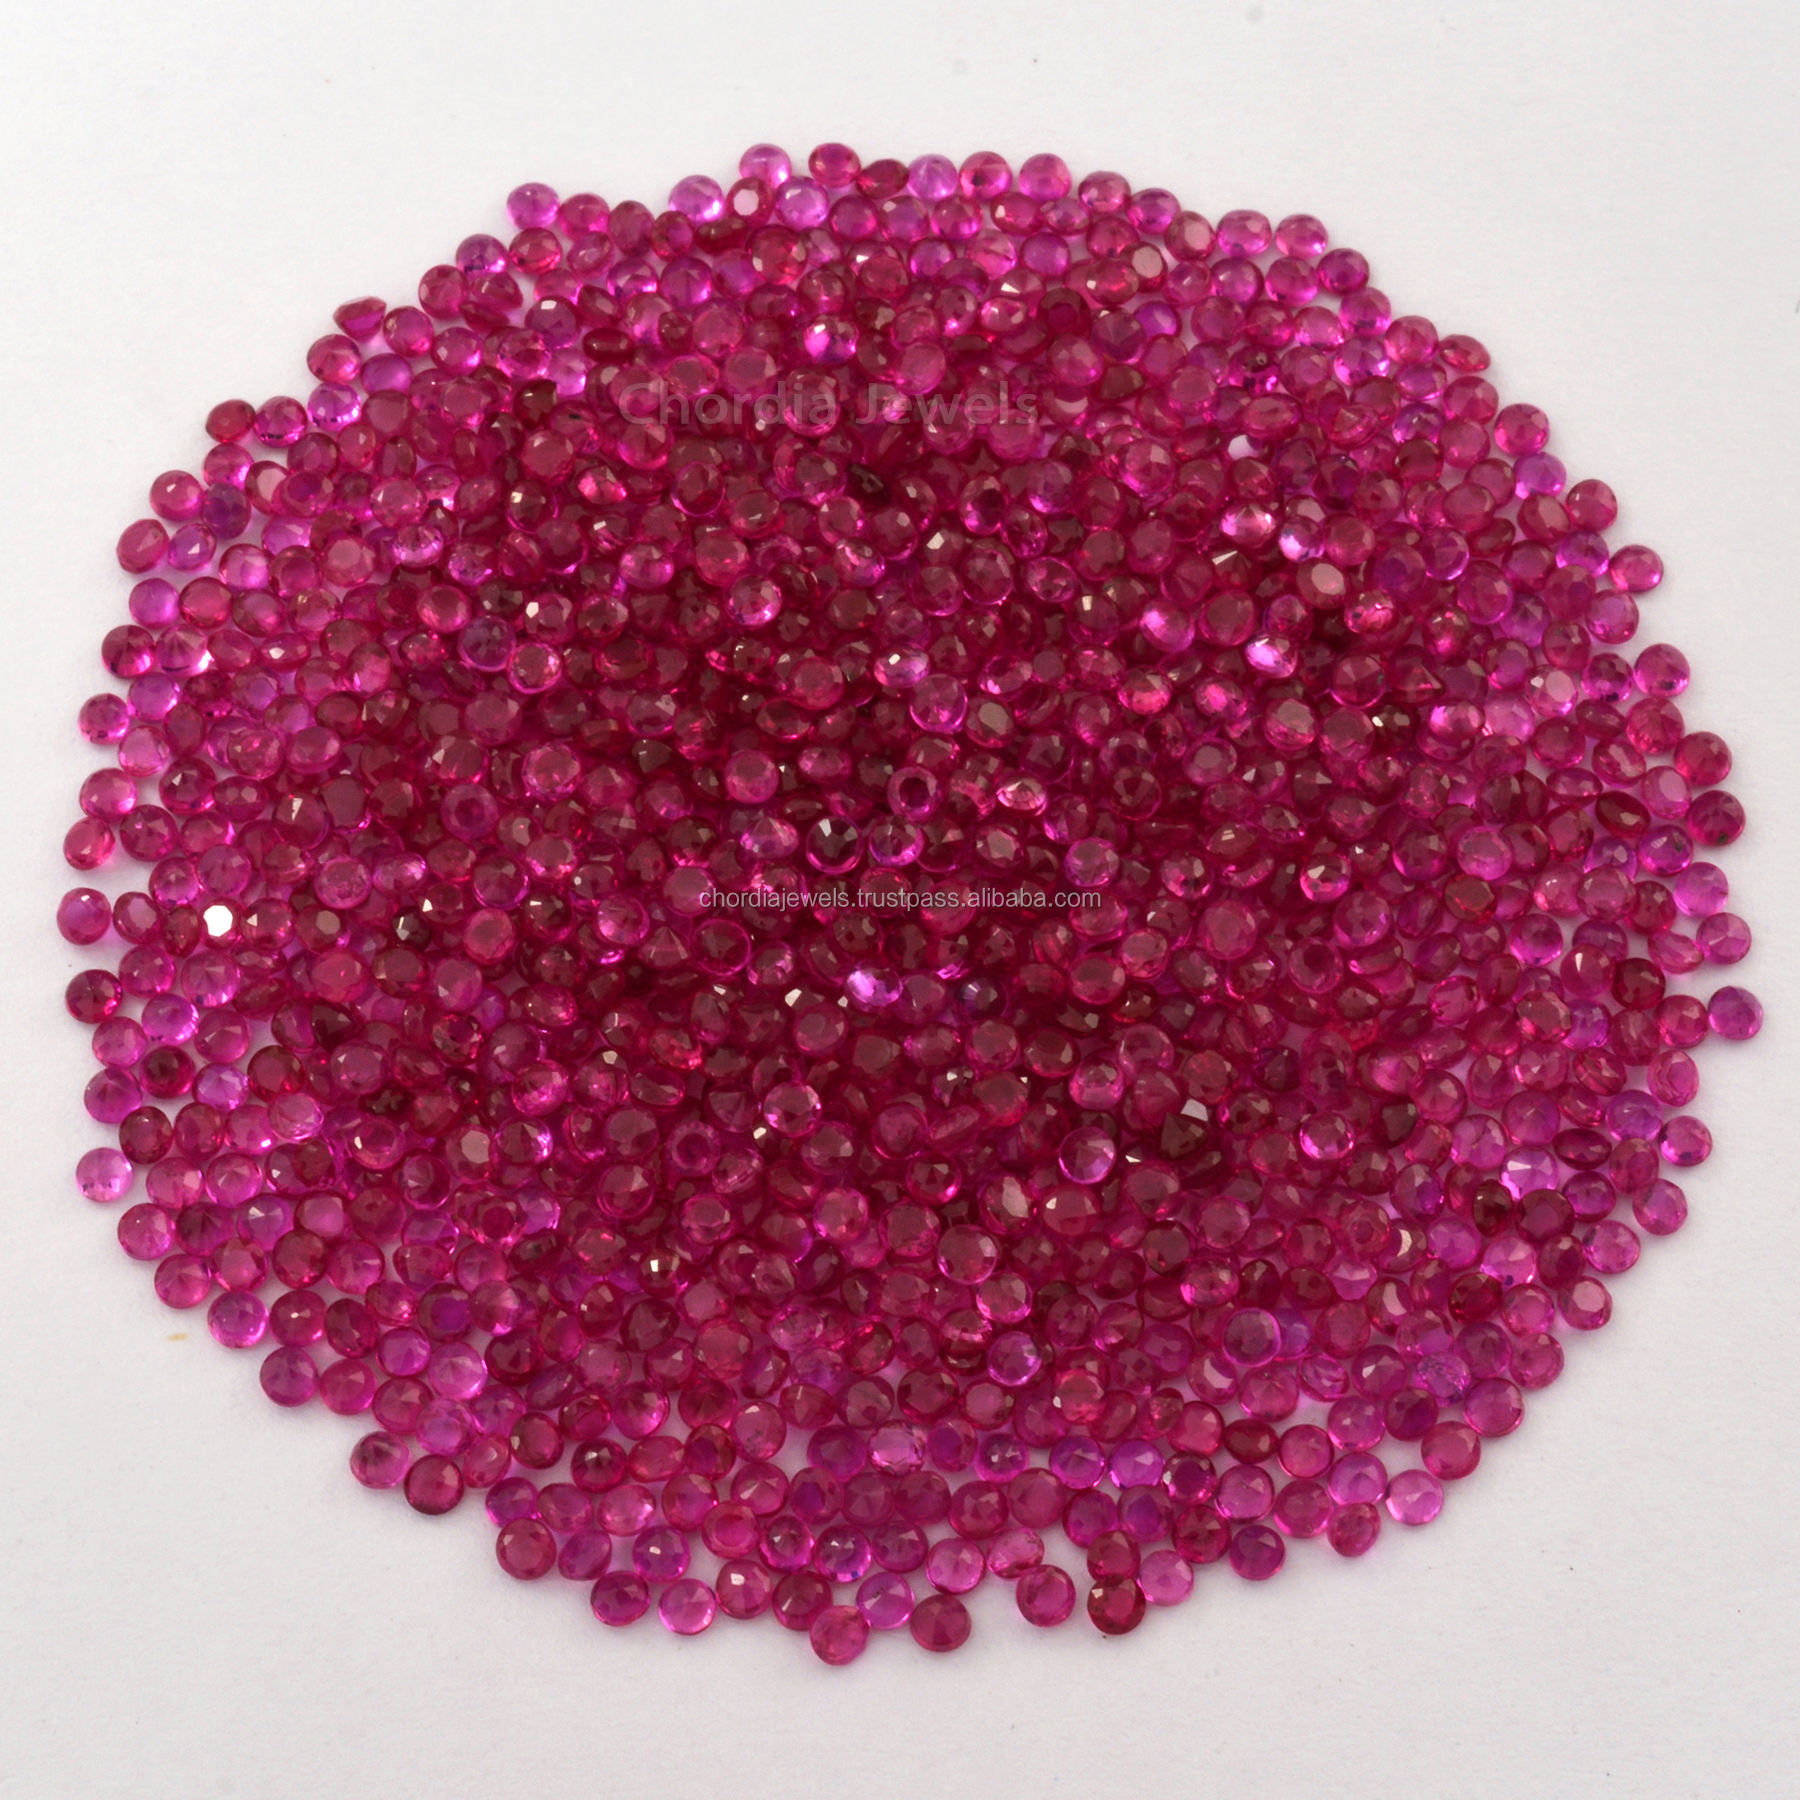 1.50ミリメートル-2ミリメートル-2.50ミリメートルTop Quality Natural Burmese Ruby Round Cut Faceted Loose Gemstone For Jewelry